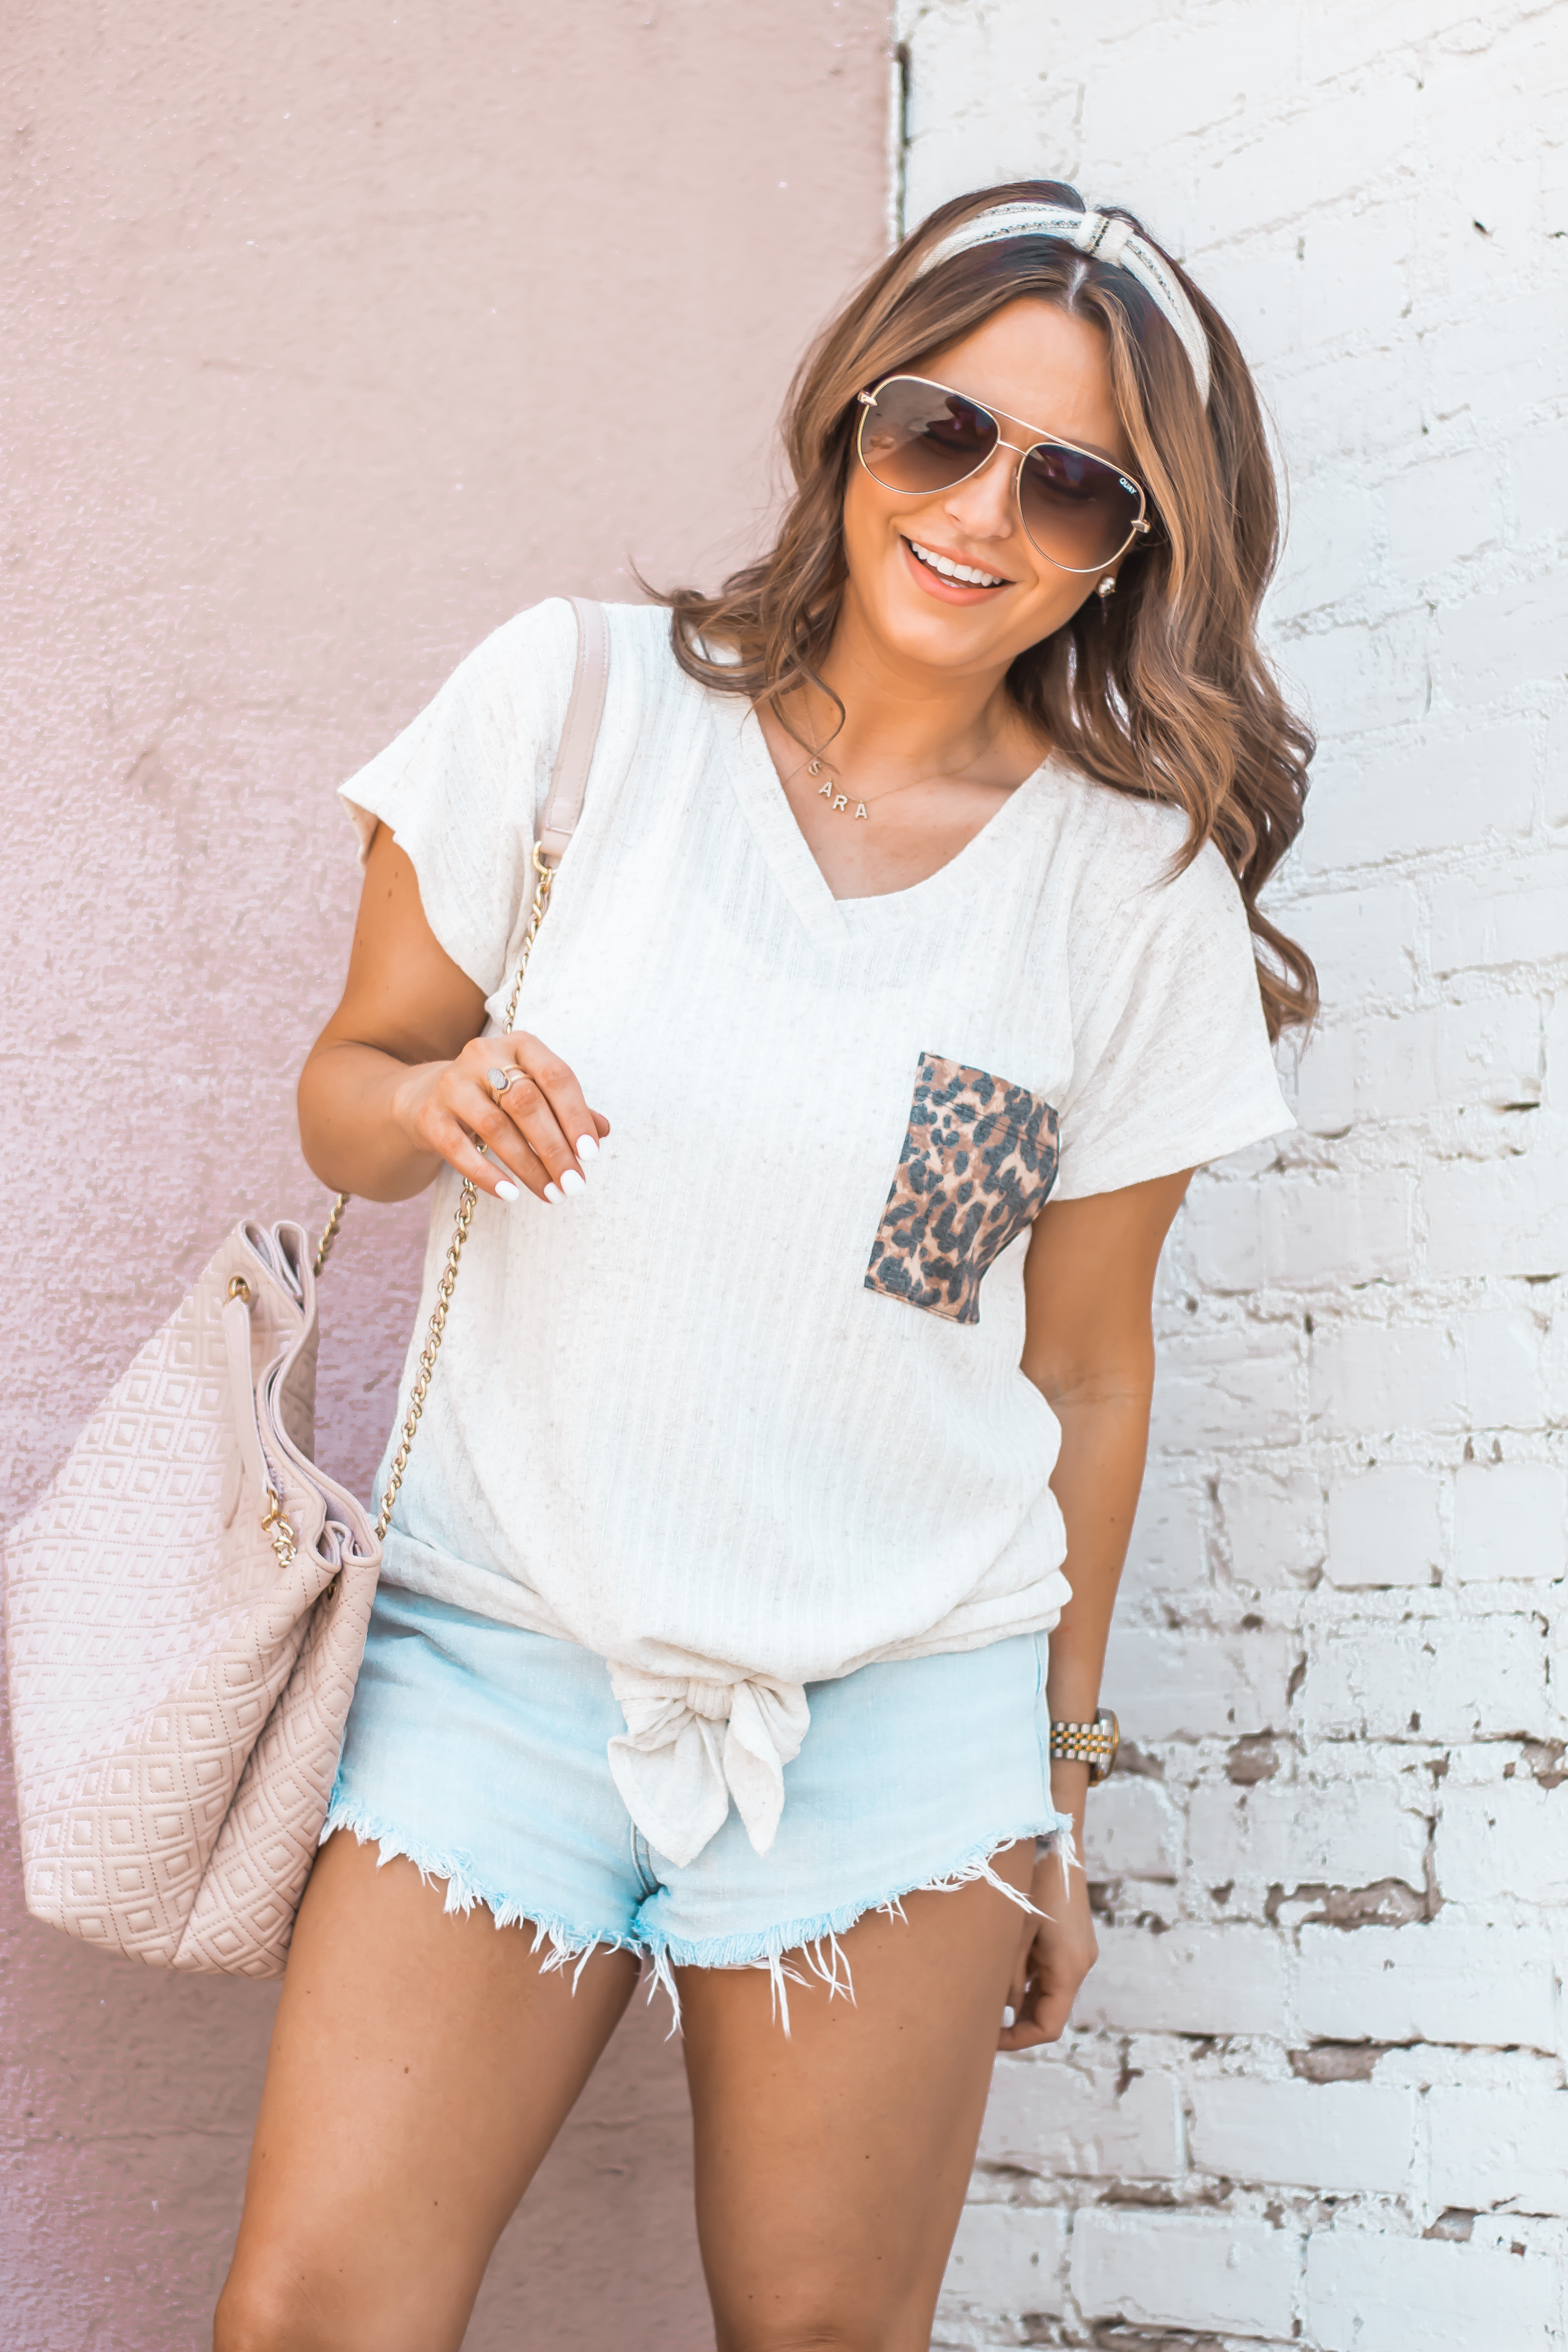 Women's Fashion-Summer Fashion-Summer Outfit Inspiration-Sabby Style-Omaha Blogger-Leopard Pocket Top-The Style Bar Boutique-Cutoff Shorts-Espadrille Wedges-Marc Fisher Wedges-Tory Burch Fleming-Quay Sunglasses-Headband Trend-Omaha-Nebraska-Midwest Blogger-1